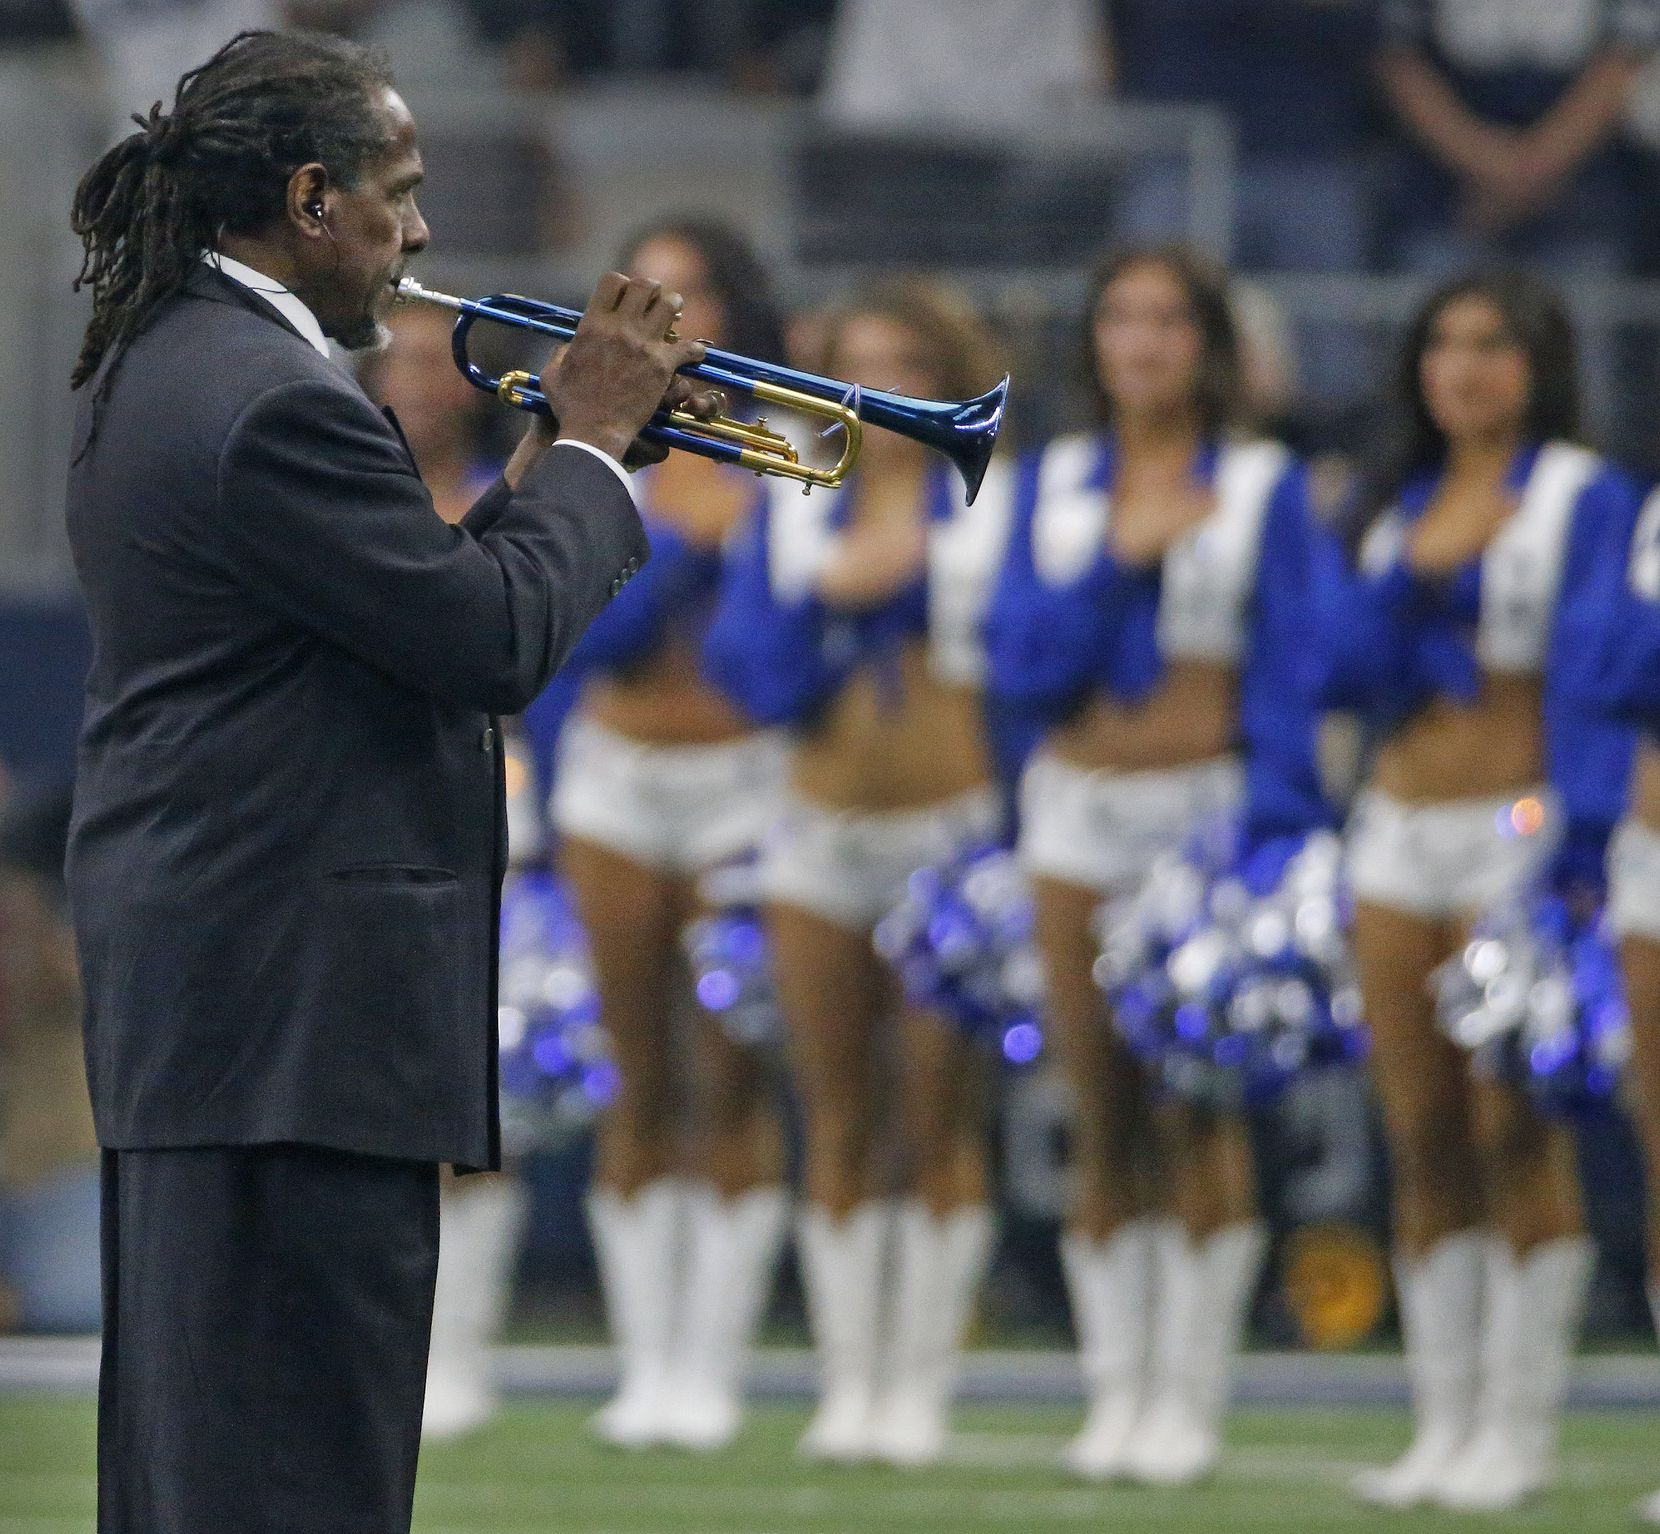 Freddie Jones plays the national anthem on his trumpet before the Los Angeles Rams vs. the Dallas Cowboys NFL football game at AT&T Stadium in Arlington on Sunday, October 1, 2017.